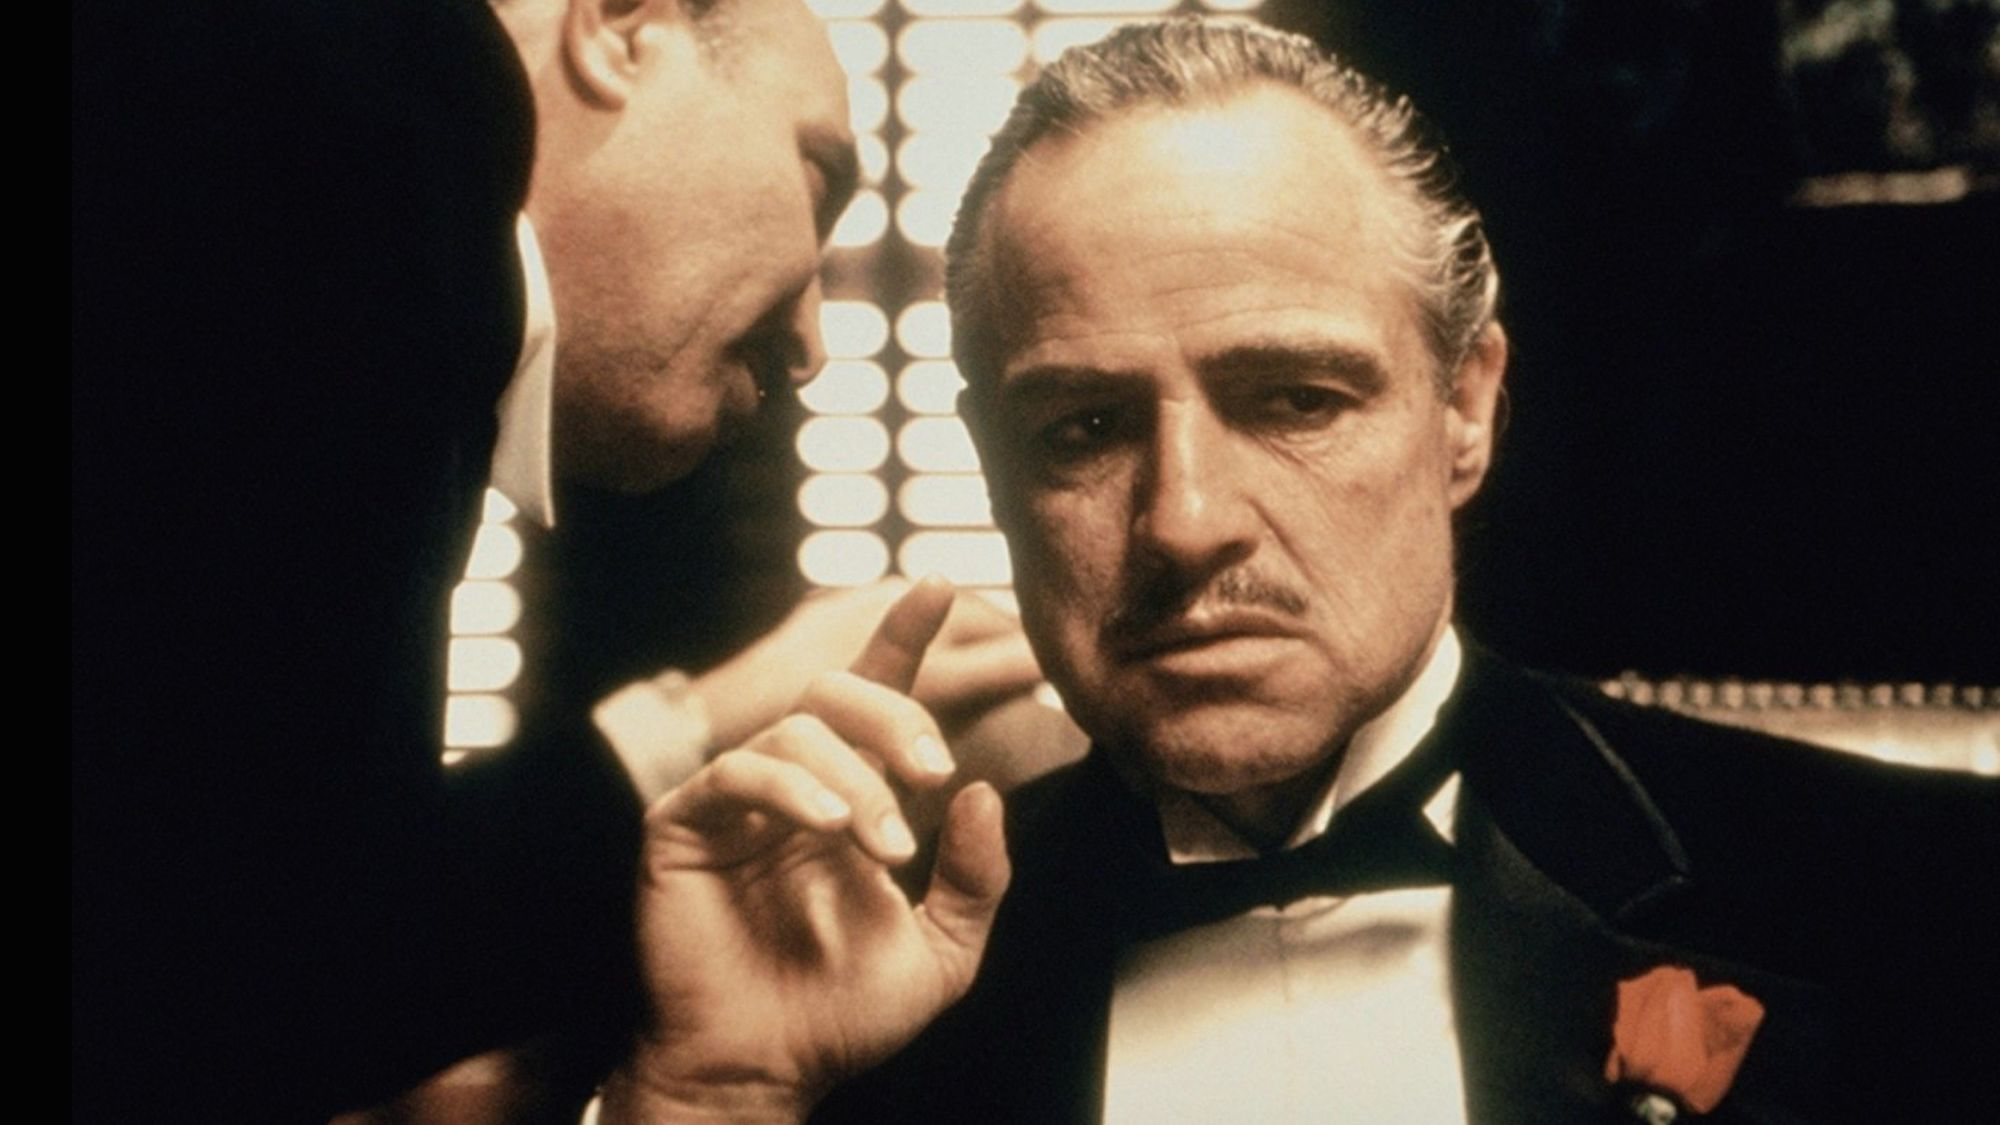 15 Surprising Facts About The Godfather | Mental Floss